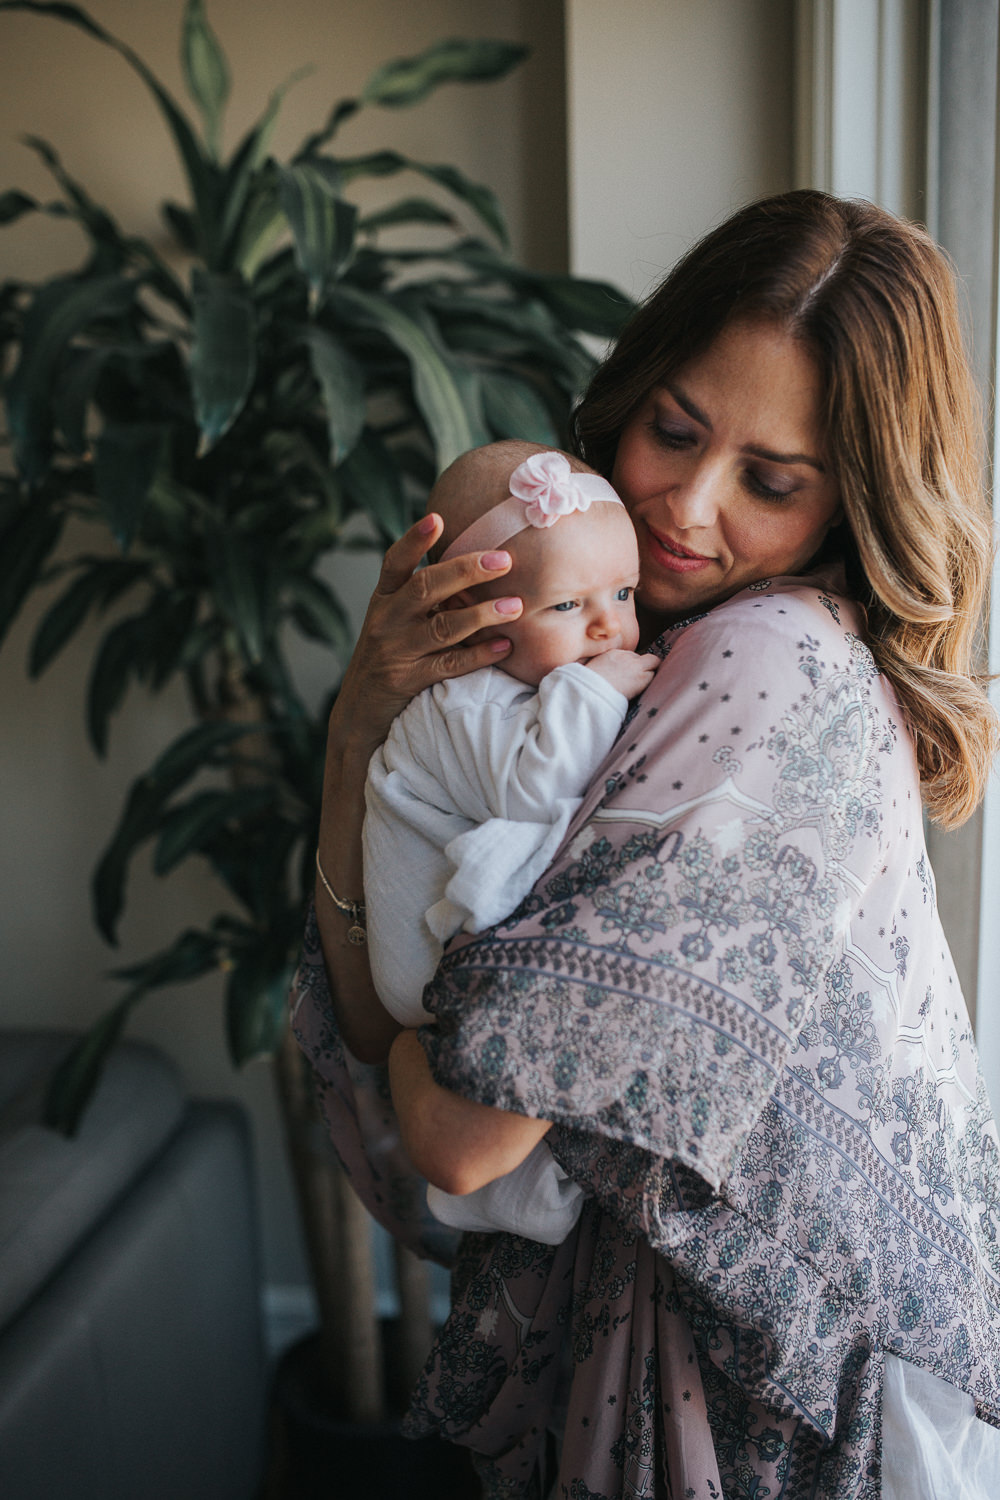 first time mom in flowered kimono holding 2 month old baby girl on shoulder - Barrie Lifestyle Photography